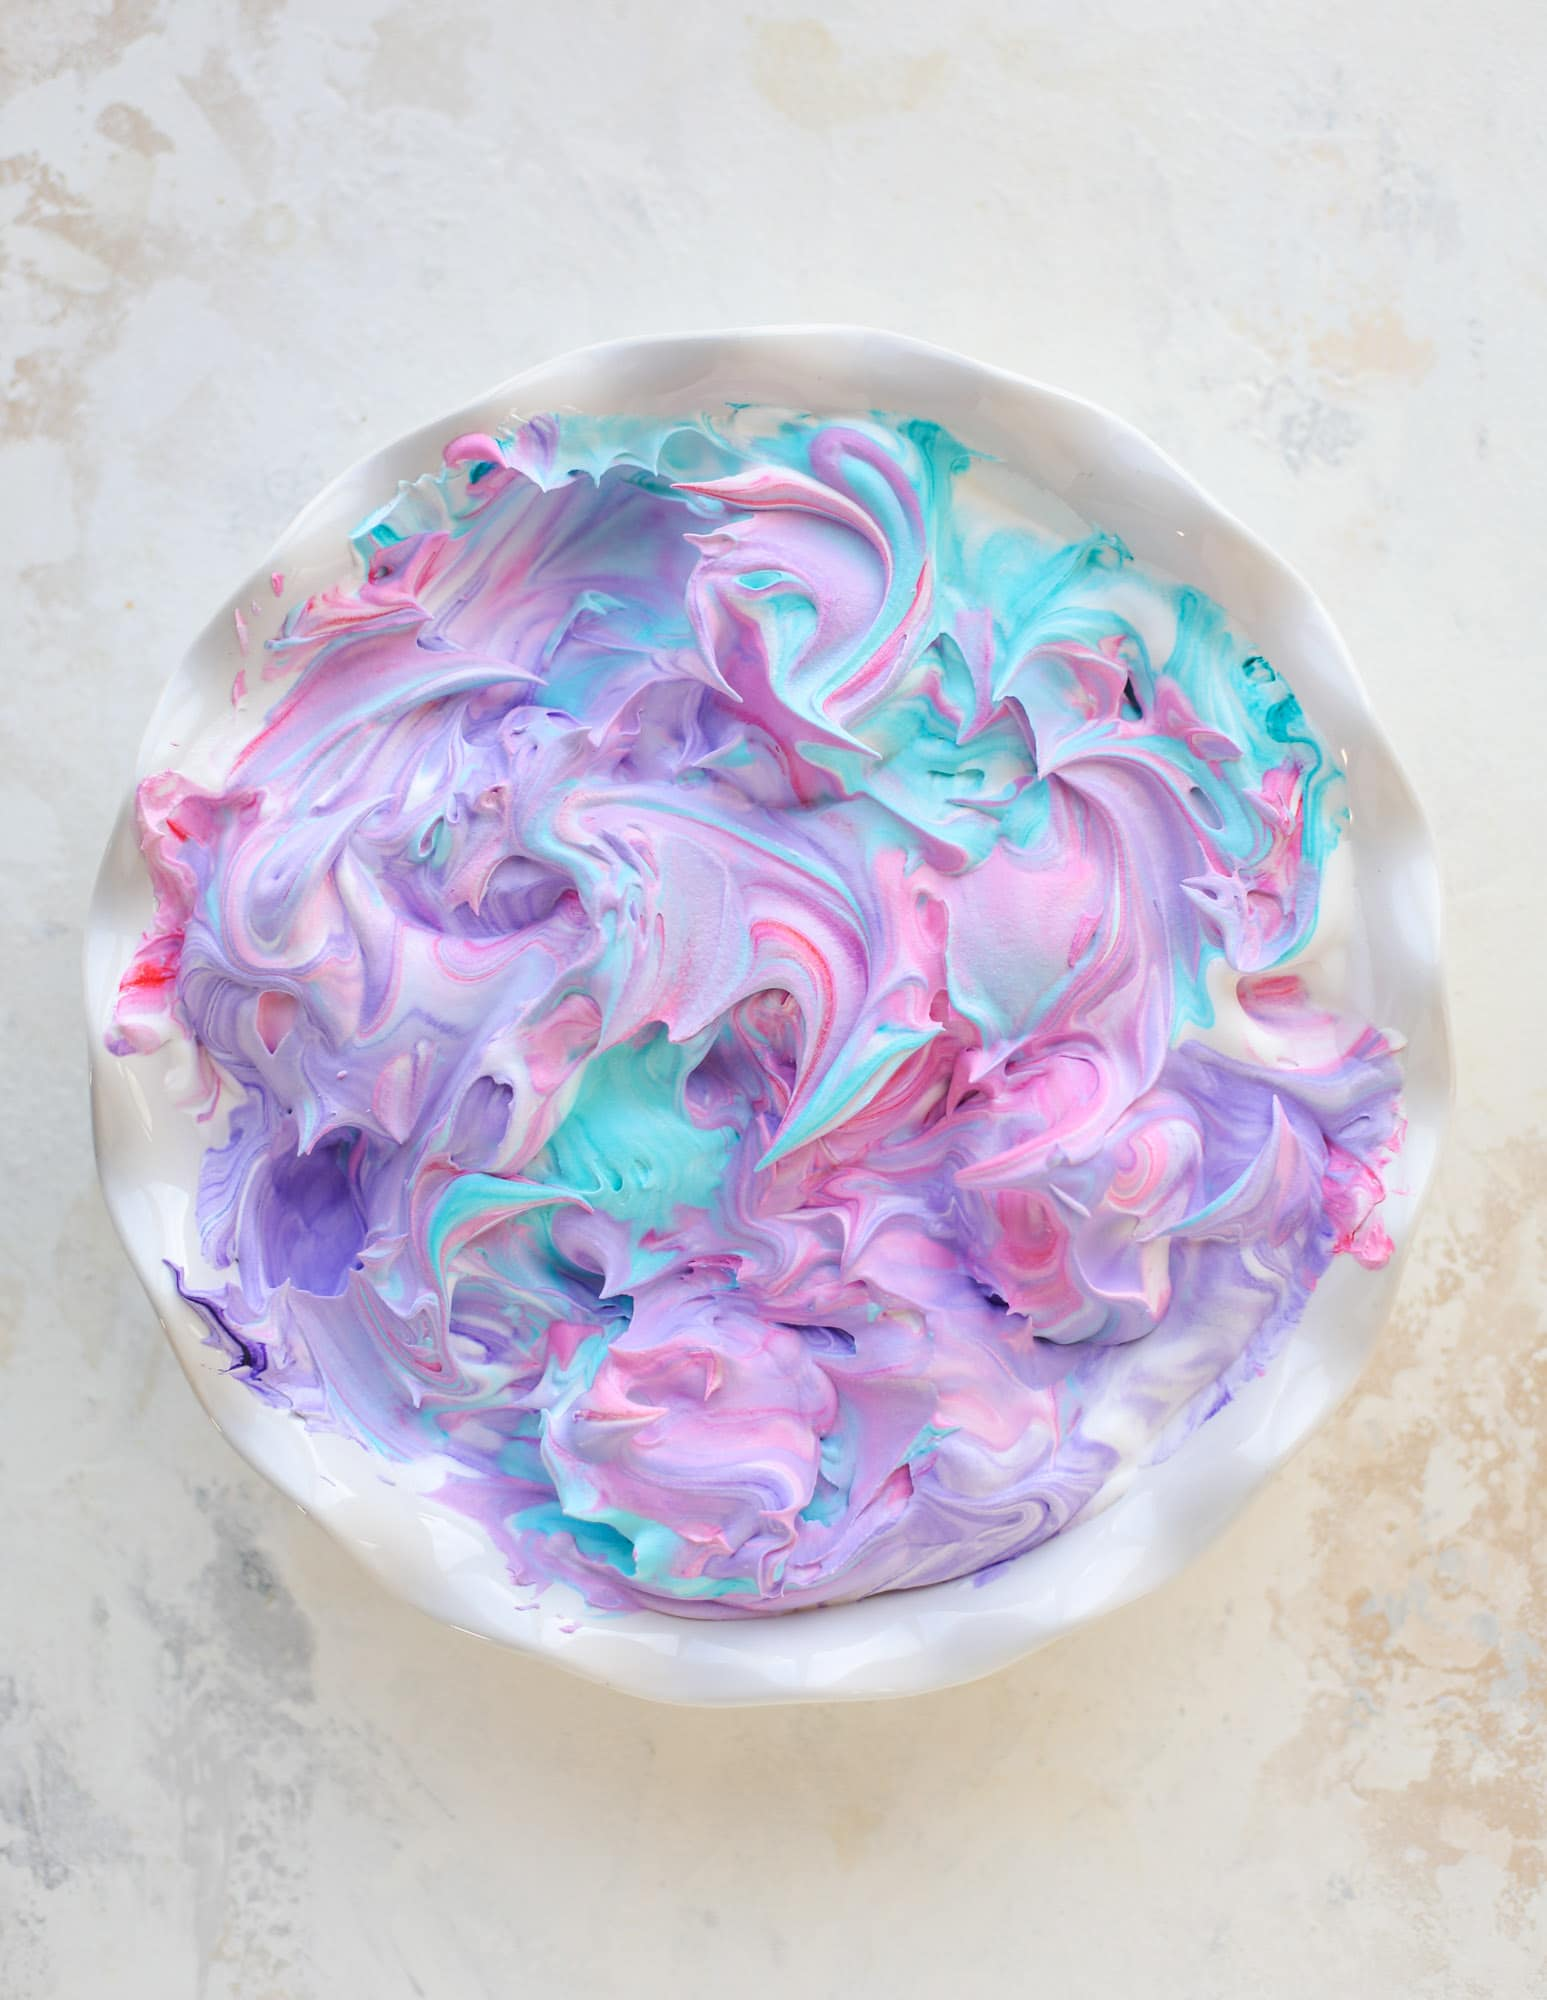 This is how to dye eggs with cool whip! It's so fun, super kid-friendly and ridiculously easy too. I love using this method to make unicorn eggs!